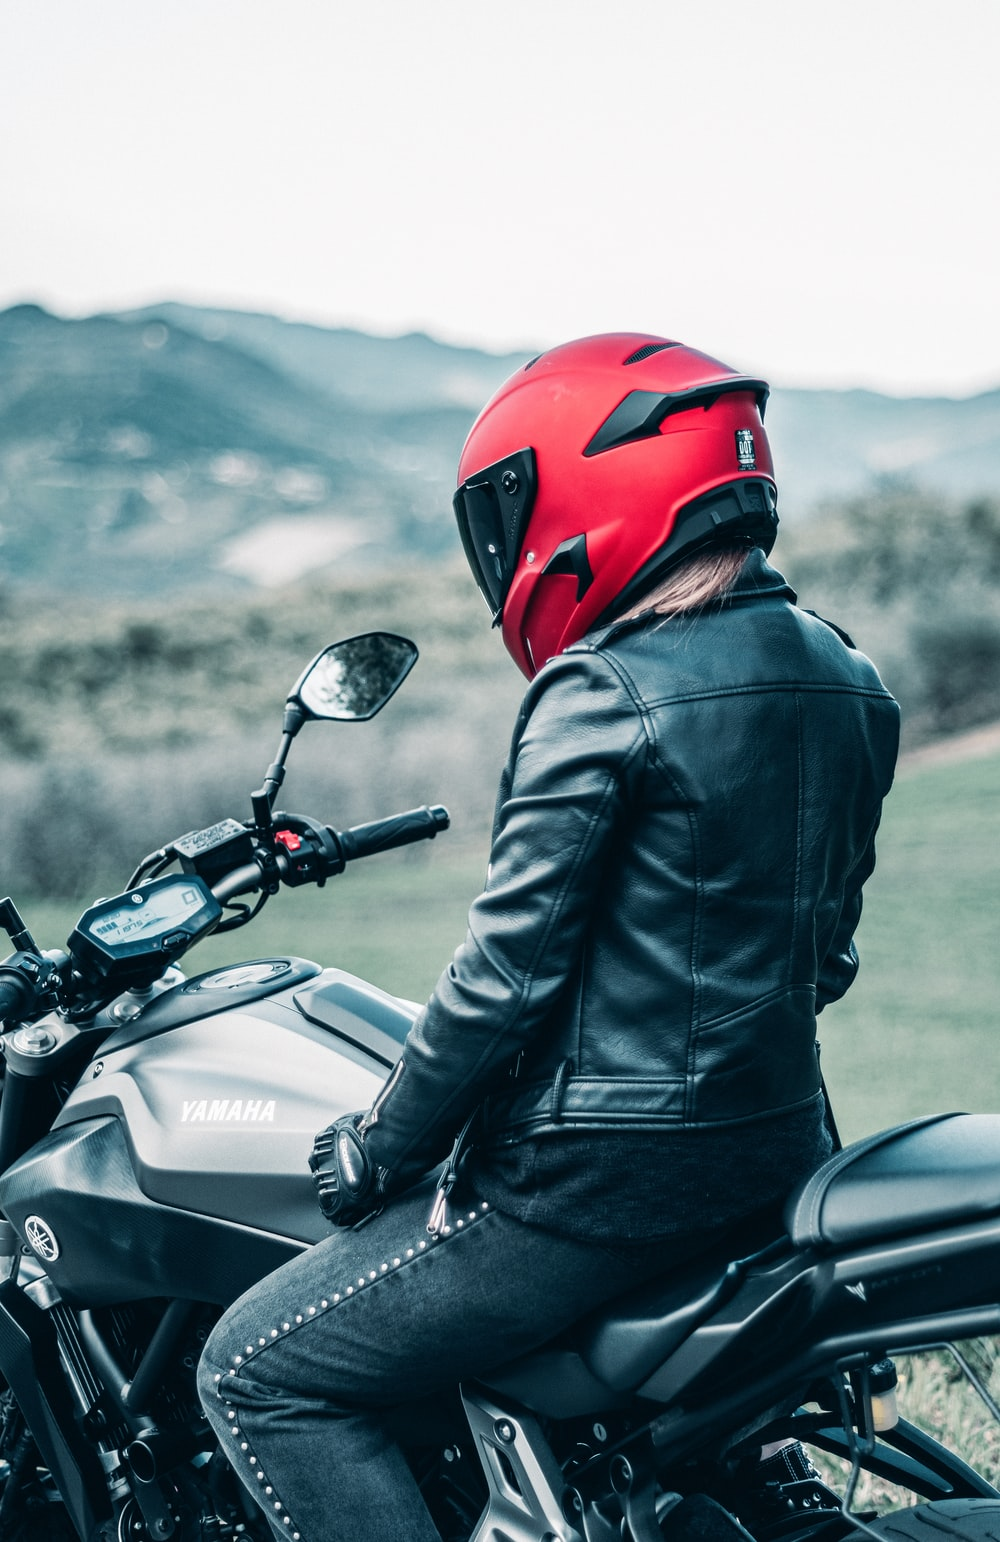 man in black leather jacket wearing red helmet riding black honda motorcycle